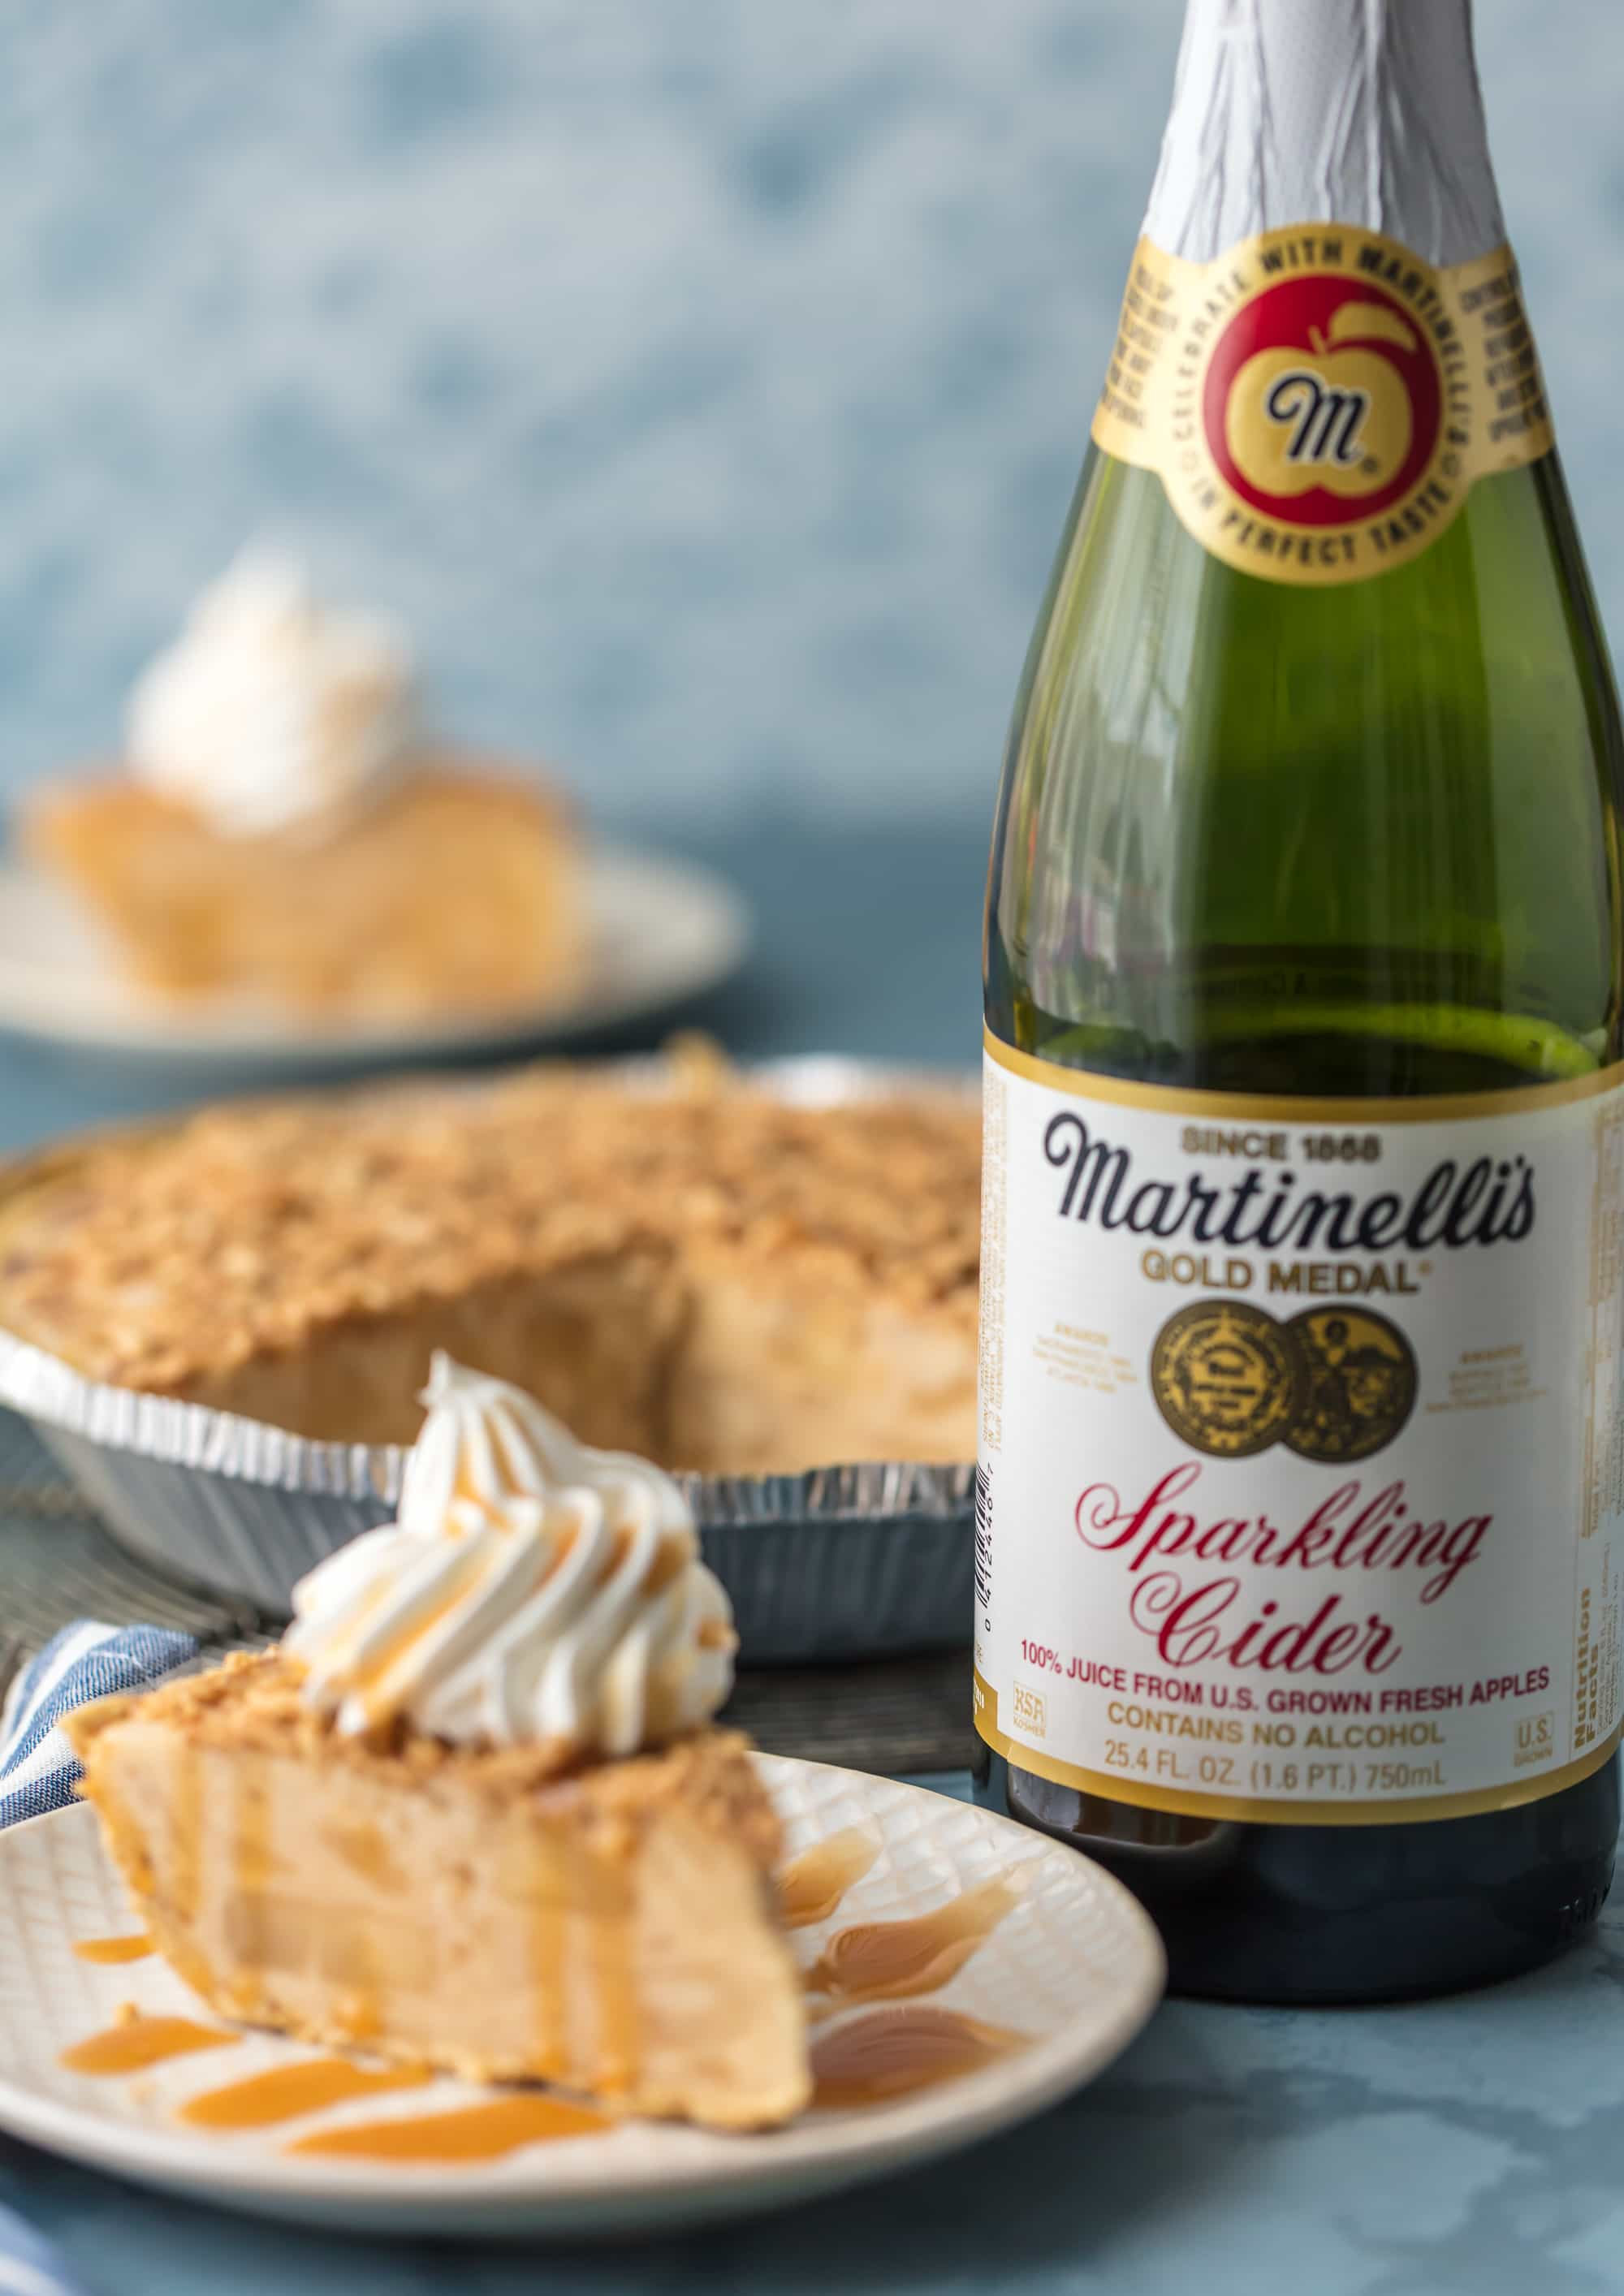 caramel apple freezer pie on plate topped with whipped cream with a bottle of martinelli's sparkling cider behind the plate